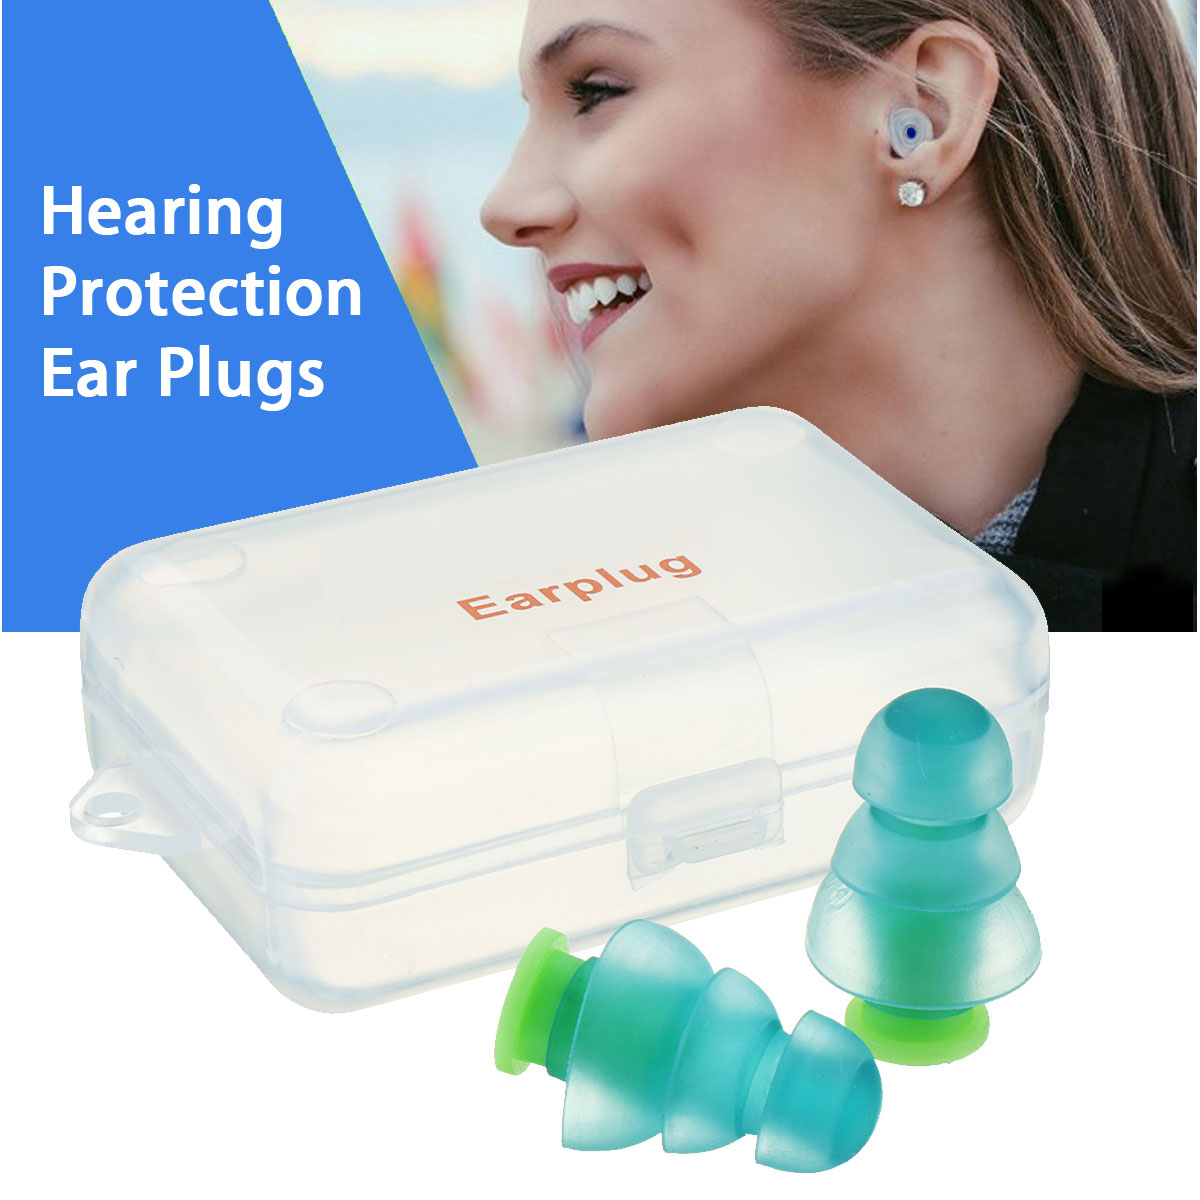 Safurance 1 Pair Noise Cancelling Hearing Protection Earplugs For Concerts Musician Motorcycles Reusable Silicone Ear plugs(China)